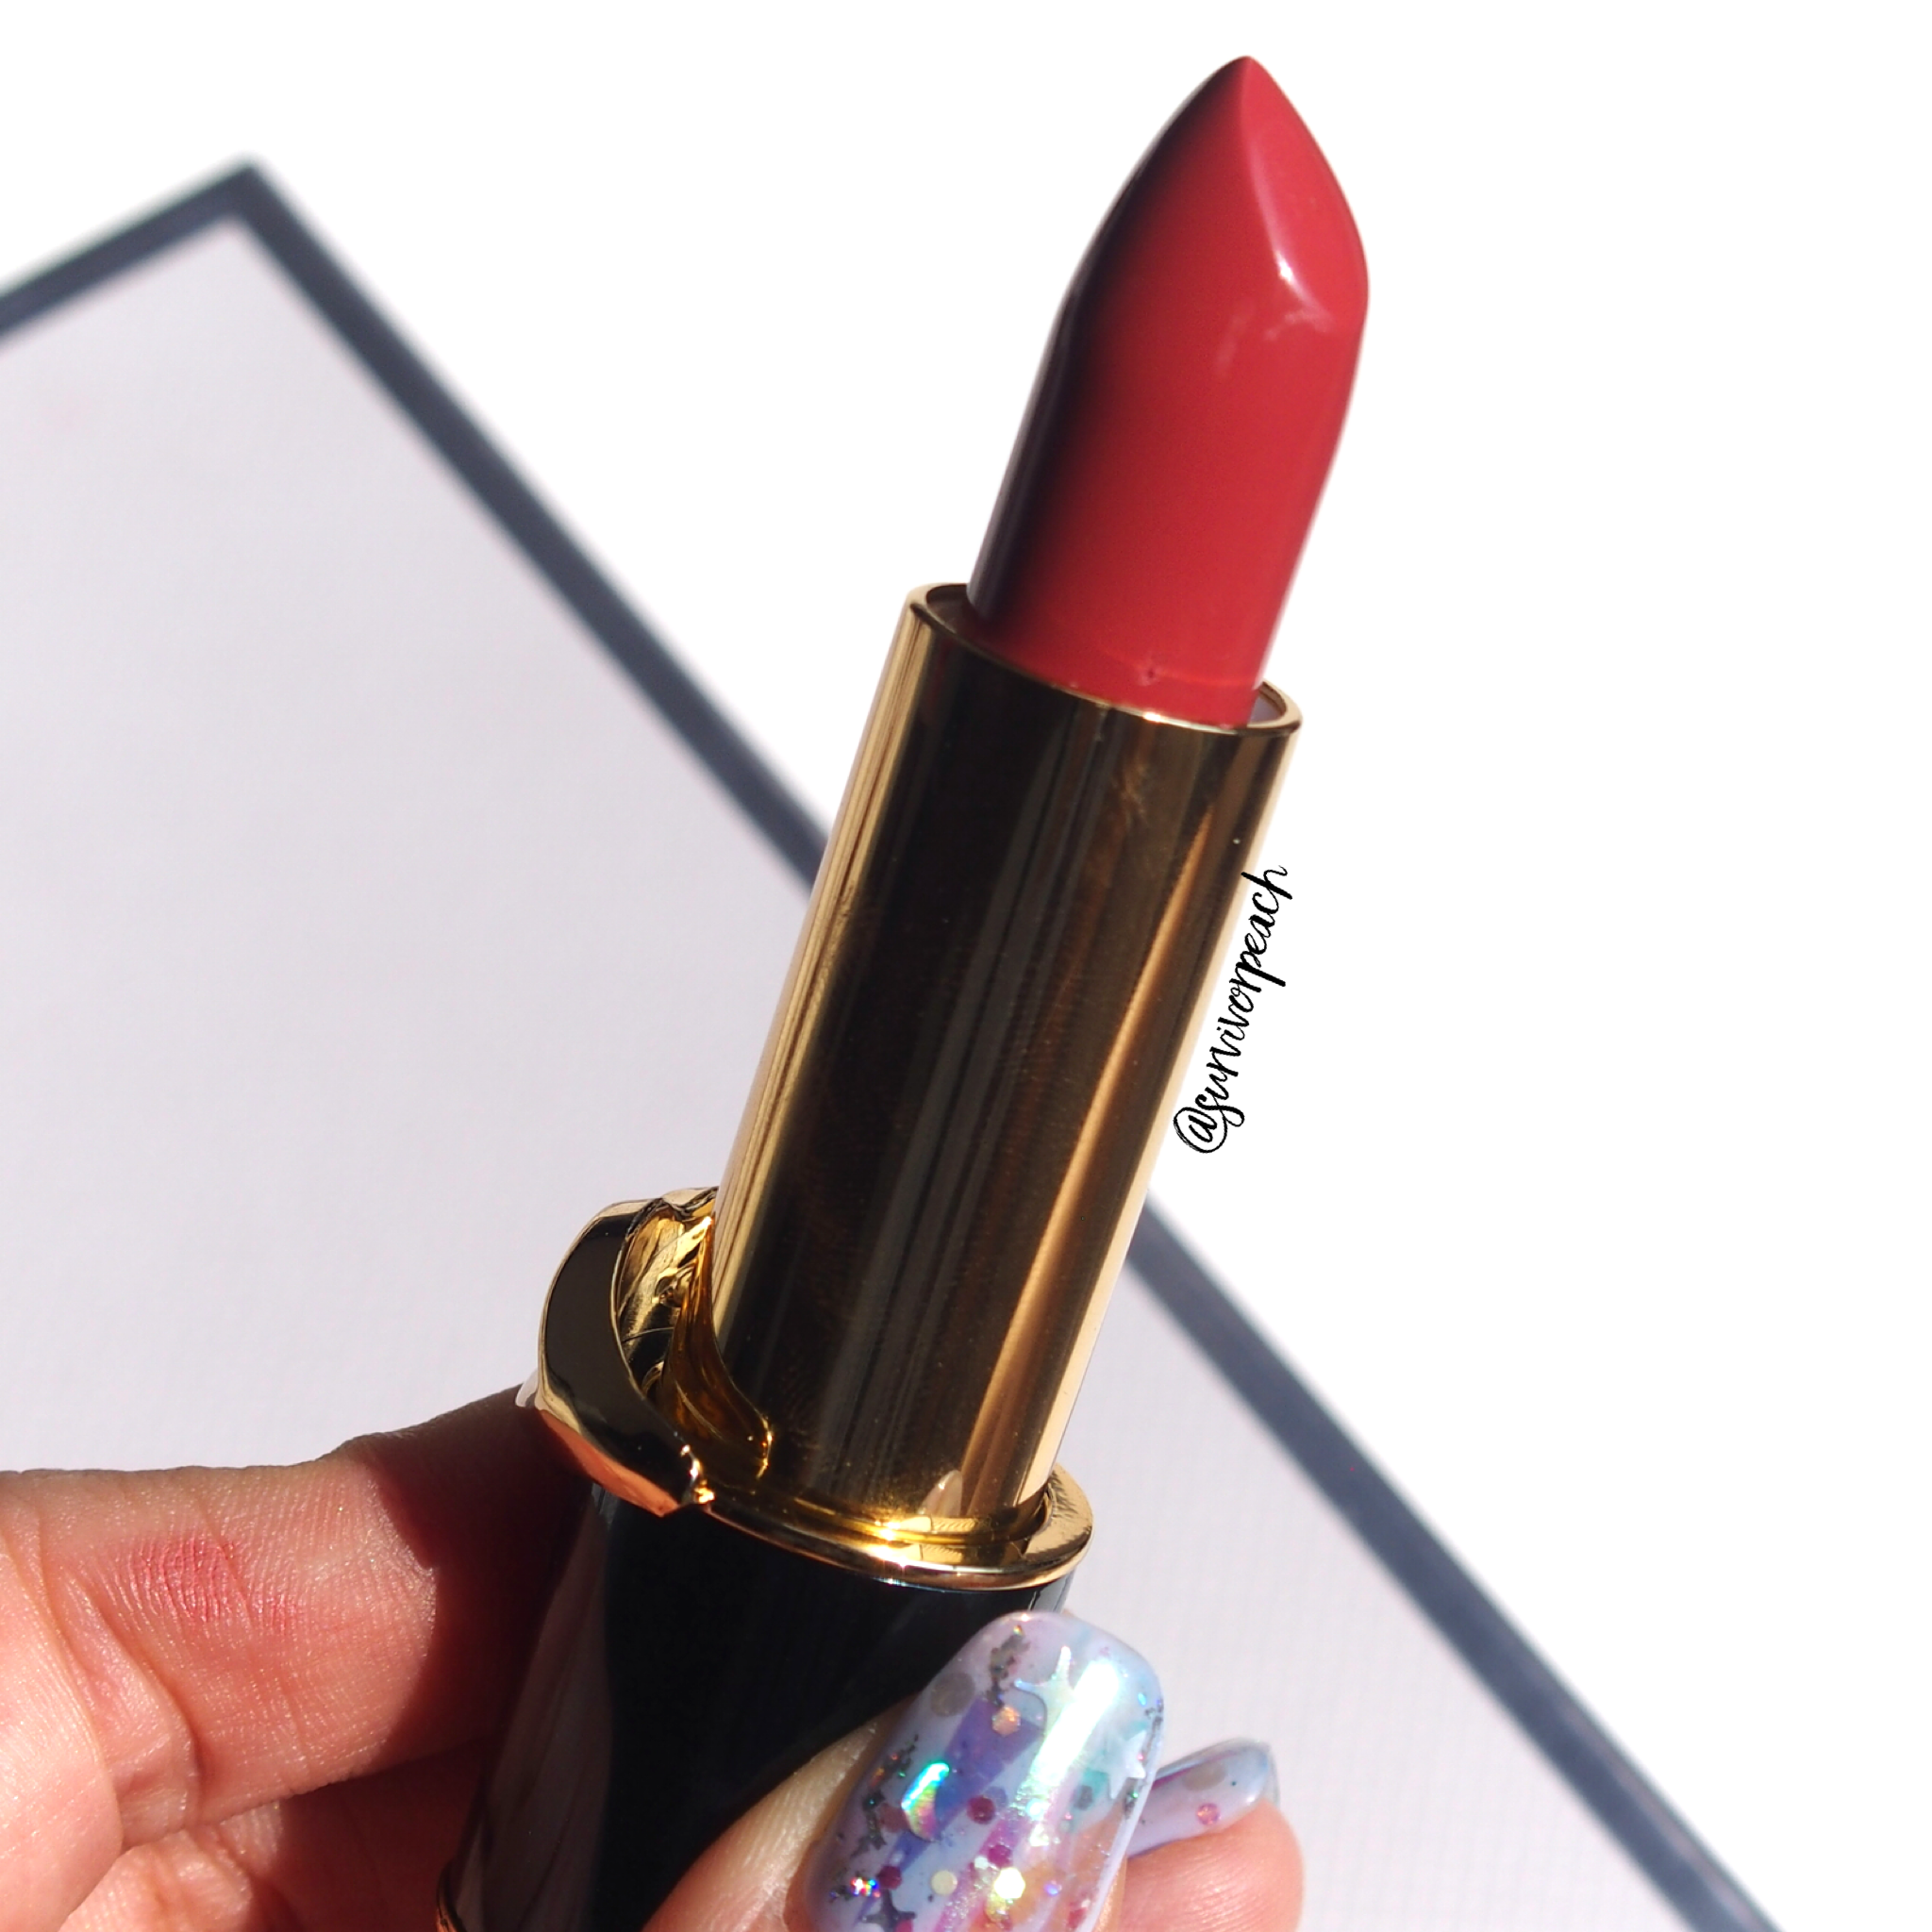 Pat McGrath Labs Luxe Trance Lipsticks in shade Tropicalia